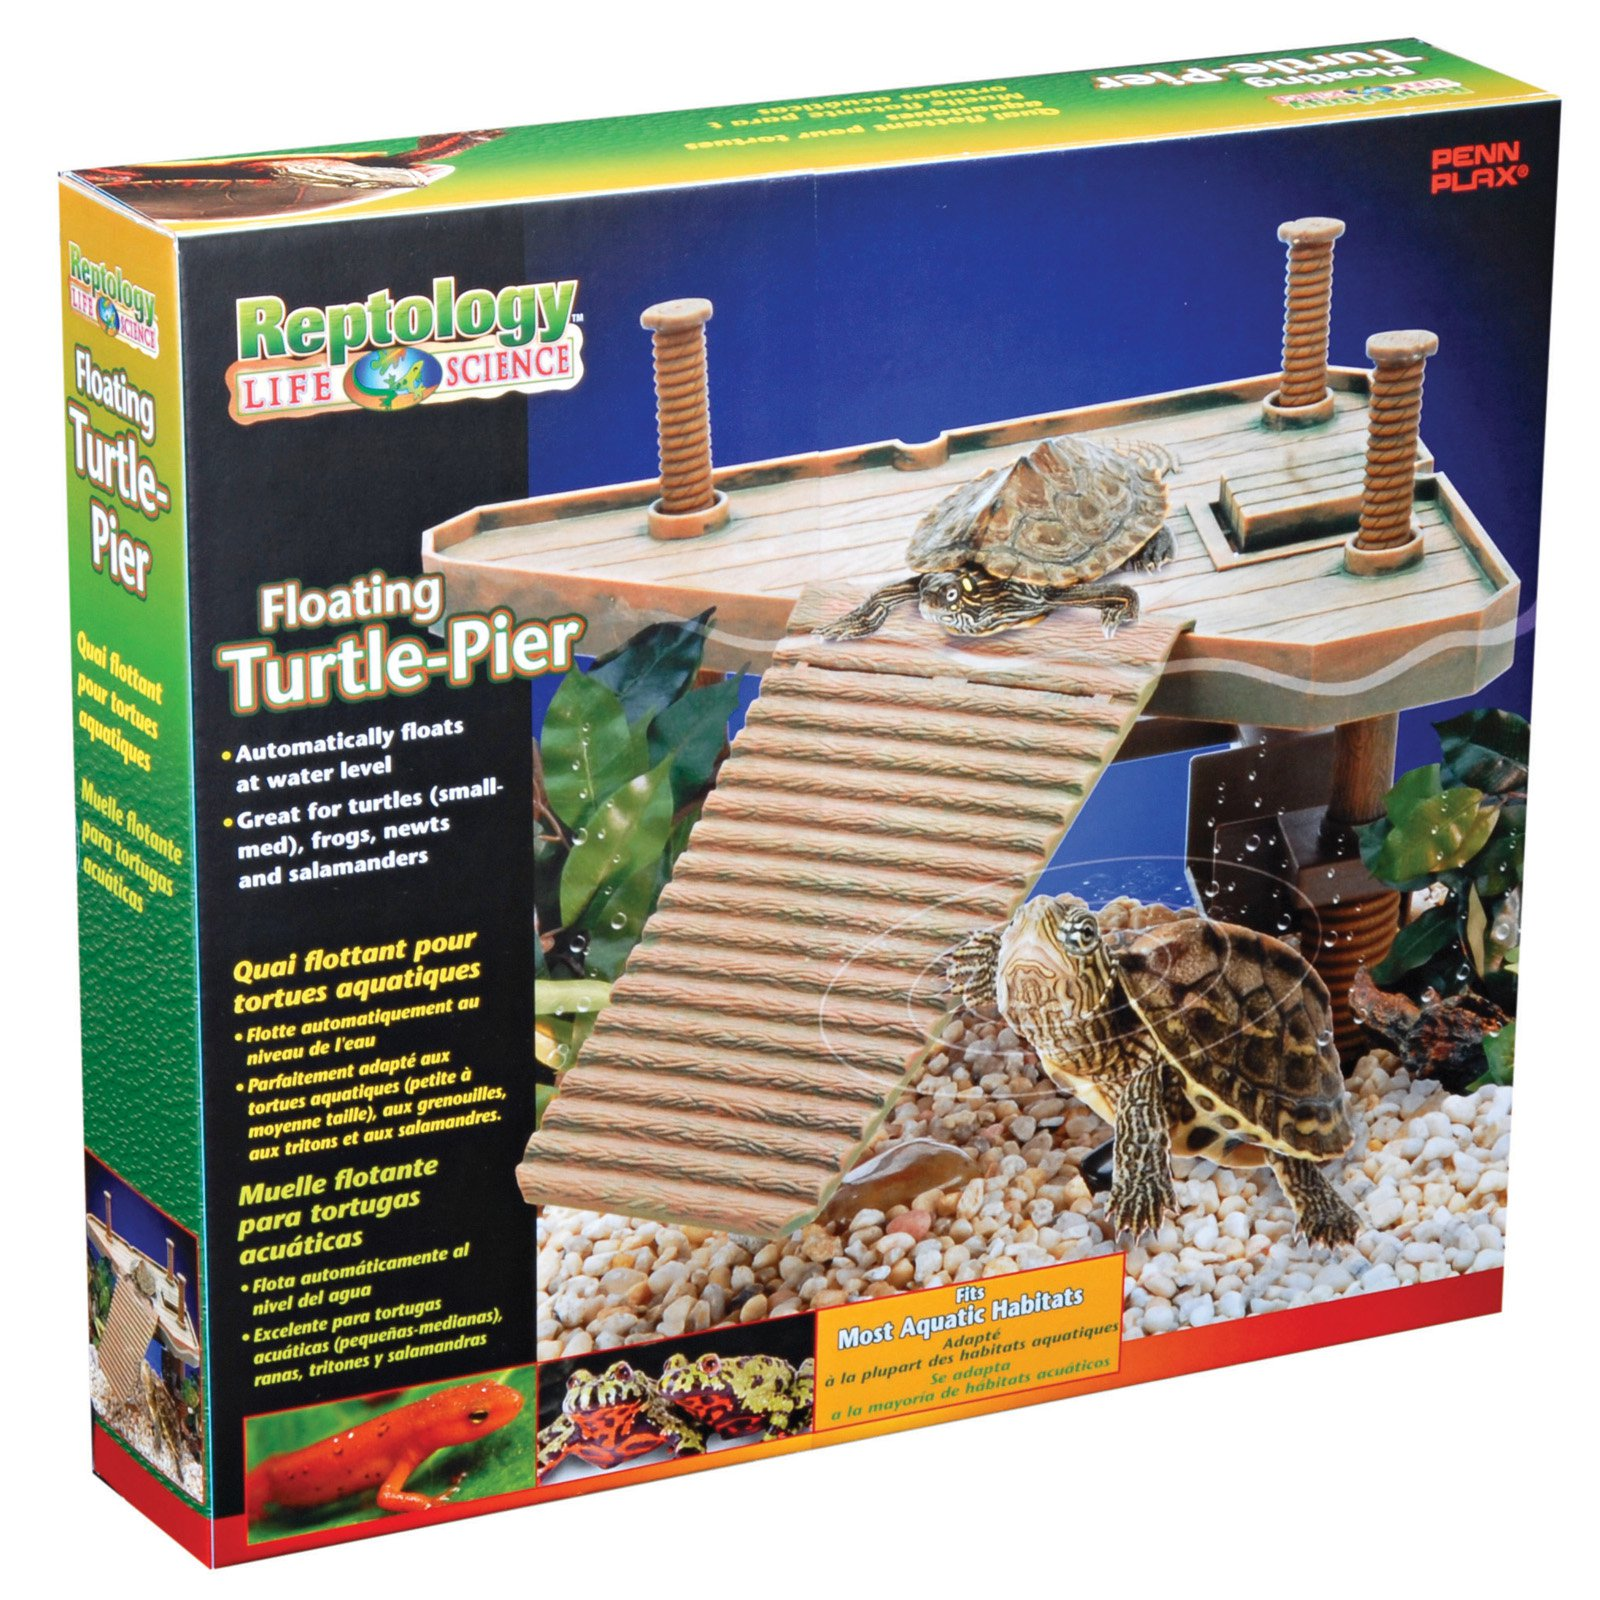 Penn Plax The Reptology Turtle Pier - Medium